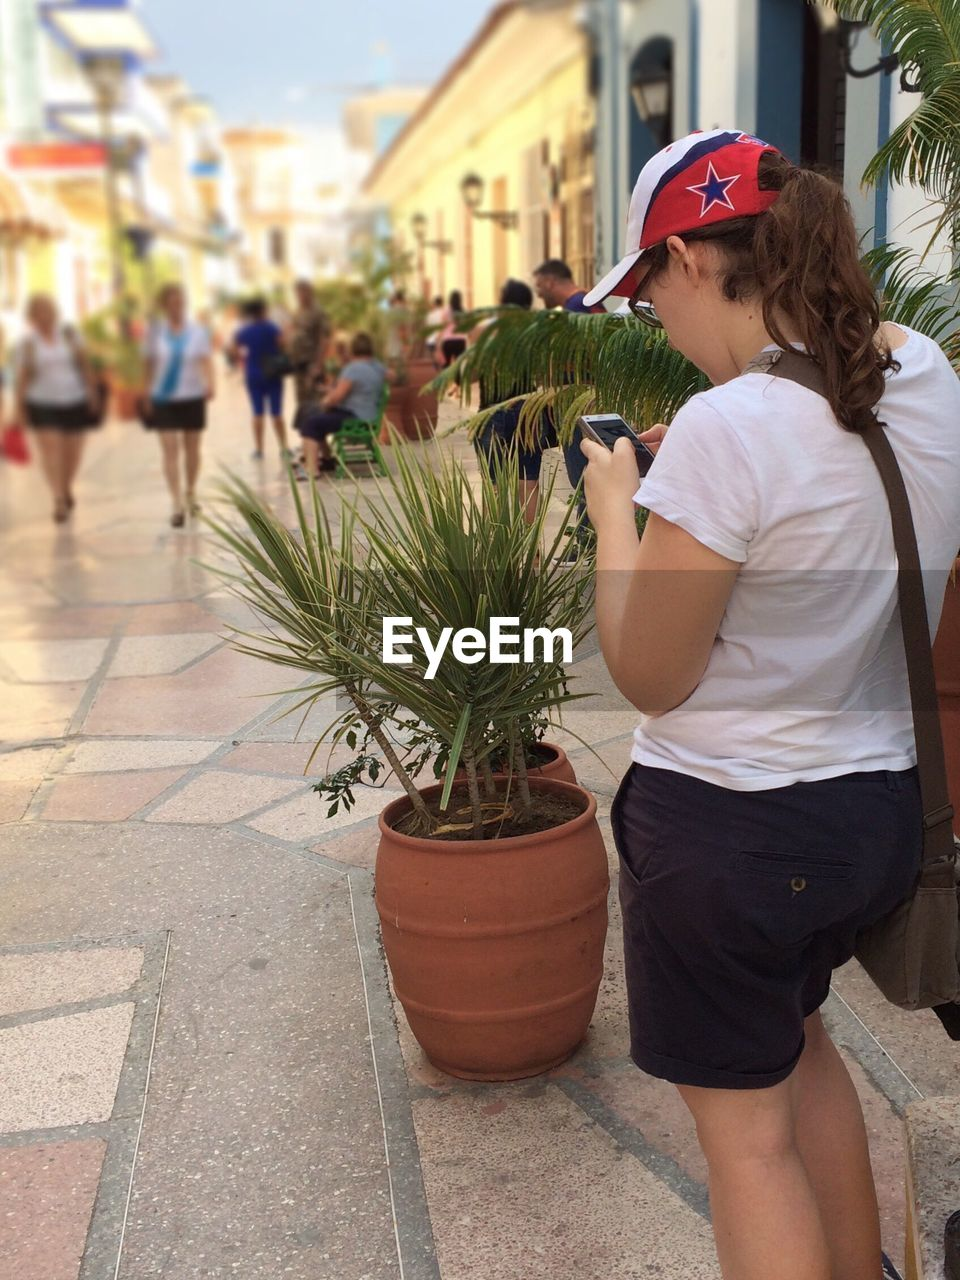 real people, casual clothing, day, one person, building exterior, potted plant, incidental people, outdoors, focus on foreground, growth, leisure activity, lifestyles, young adult, cap, plant, architecture, young women, standing, built structure, city